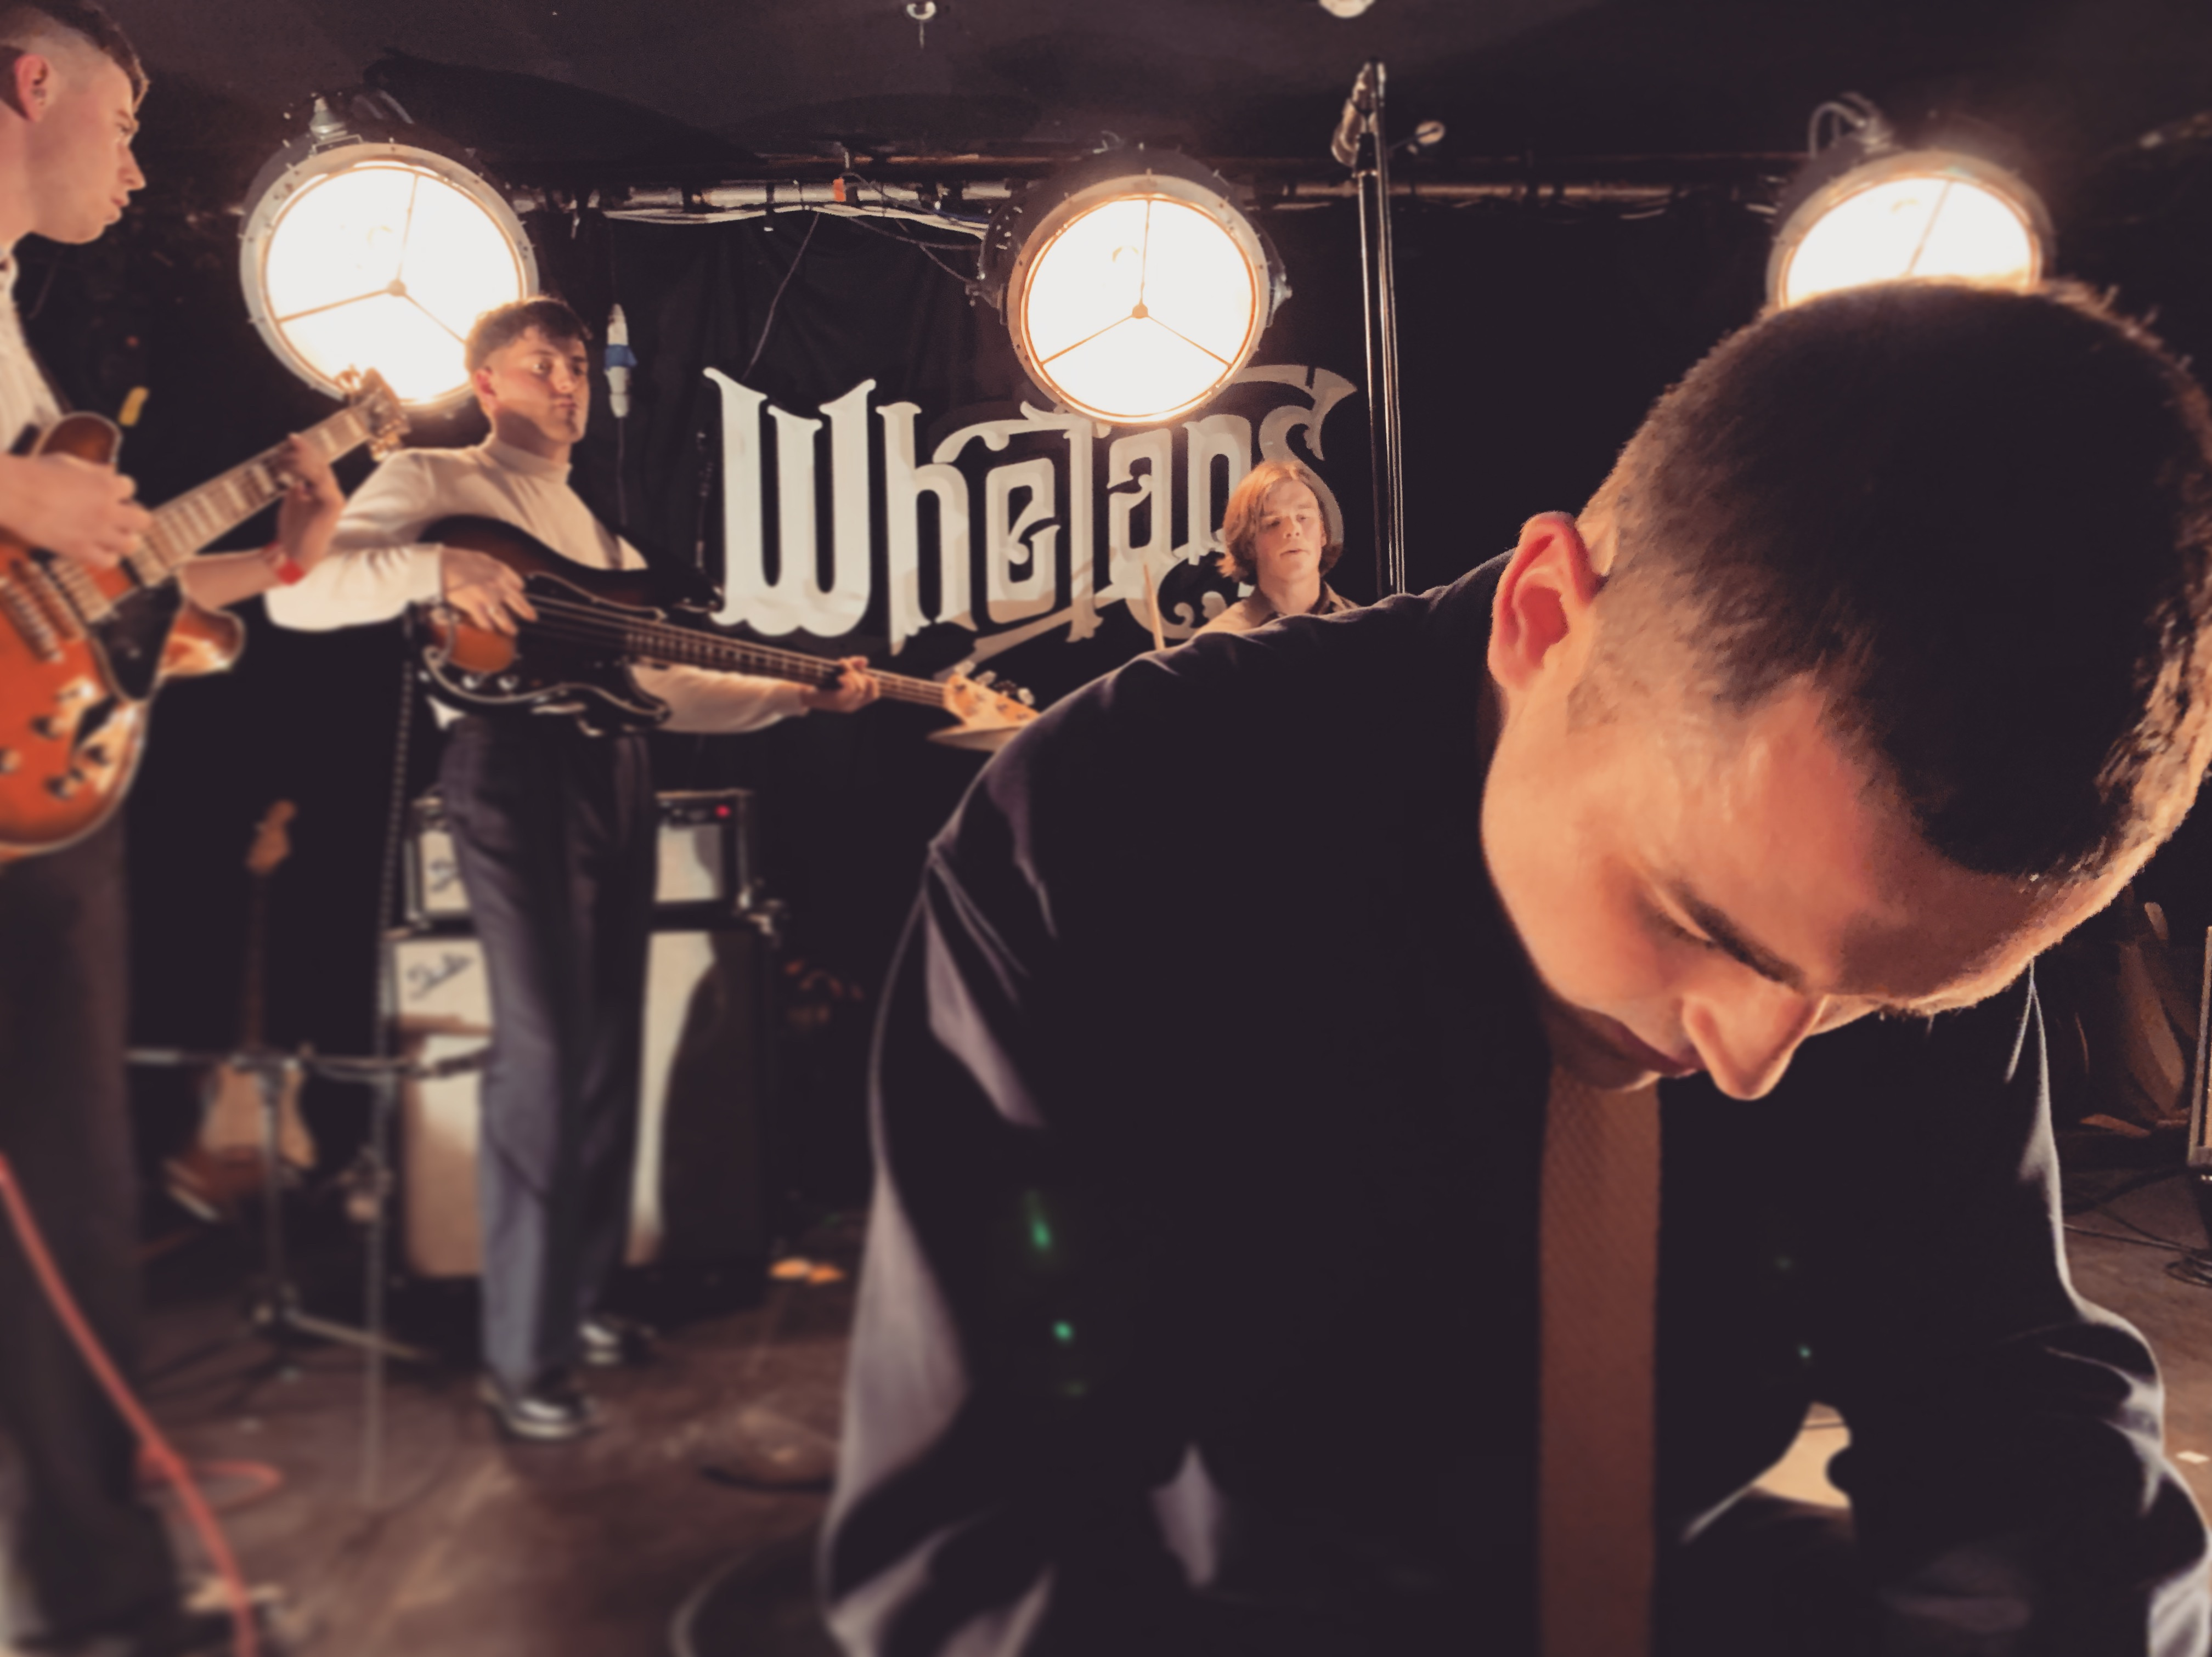 The Murder Capital @ Whelan's Dublin, 11/05/2019. Photo by author.